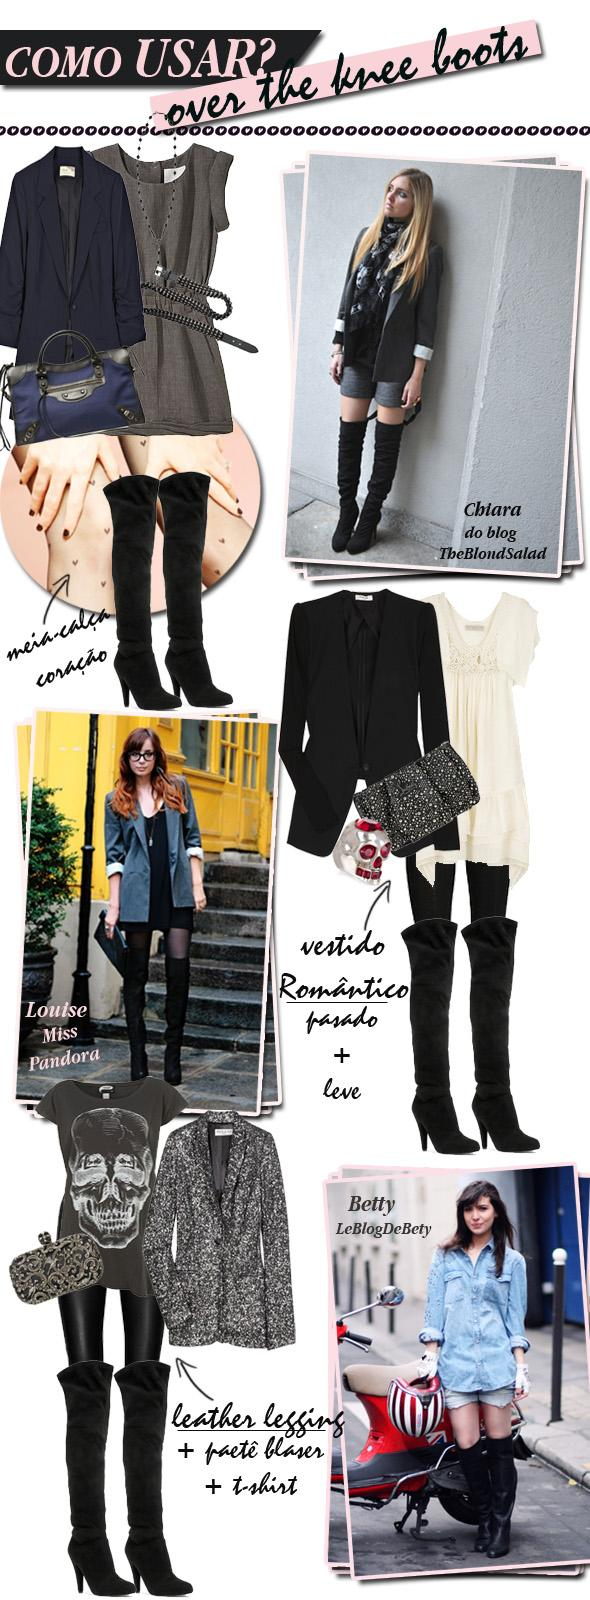 COMO USAR_OVER THE KNEE BOOTS_glam4you